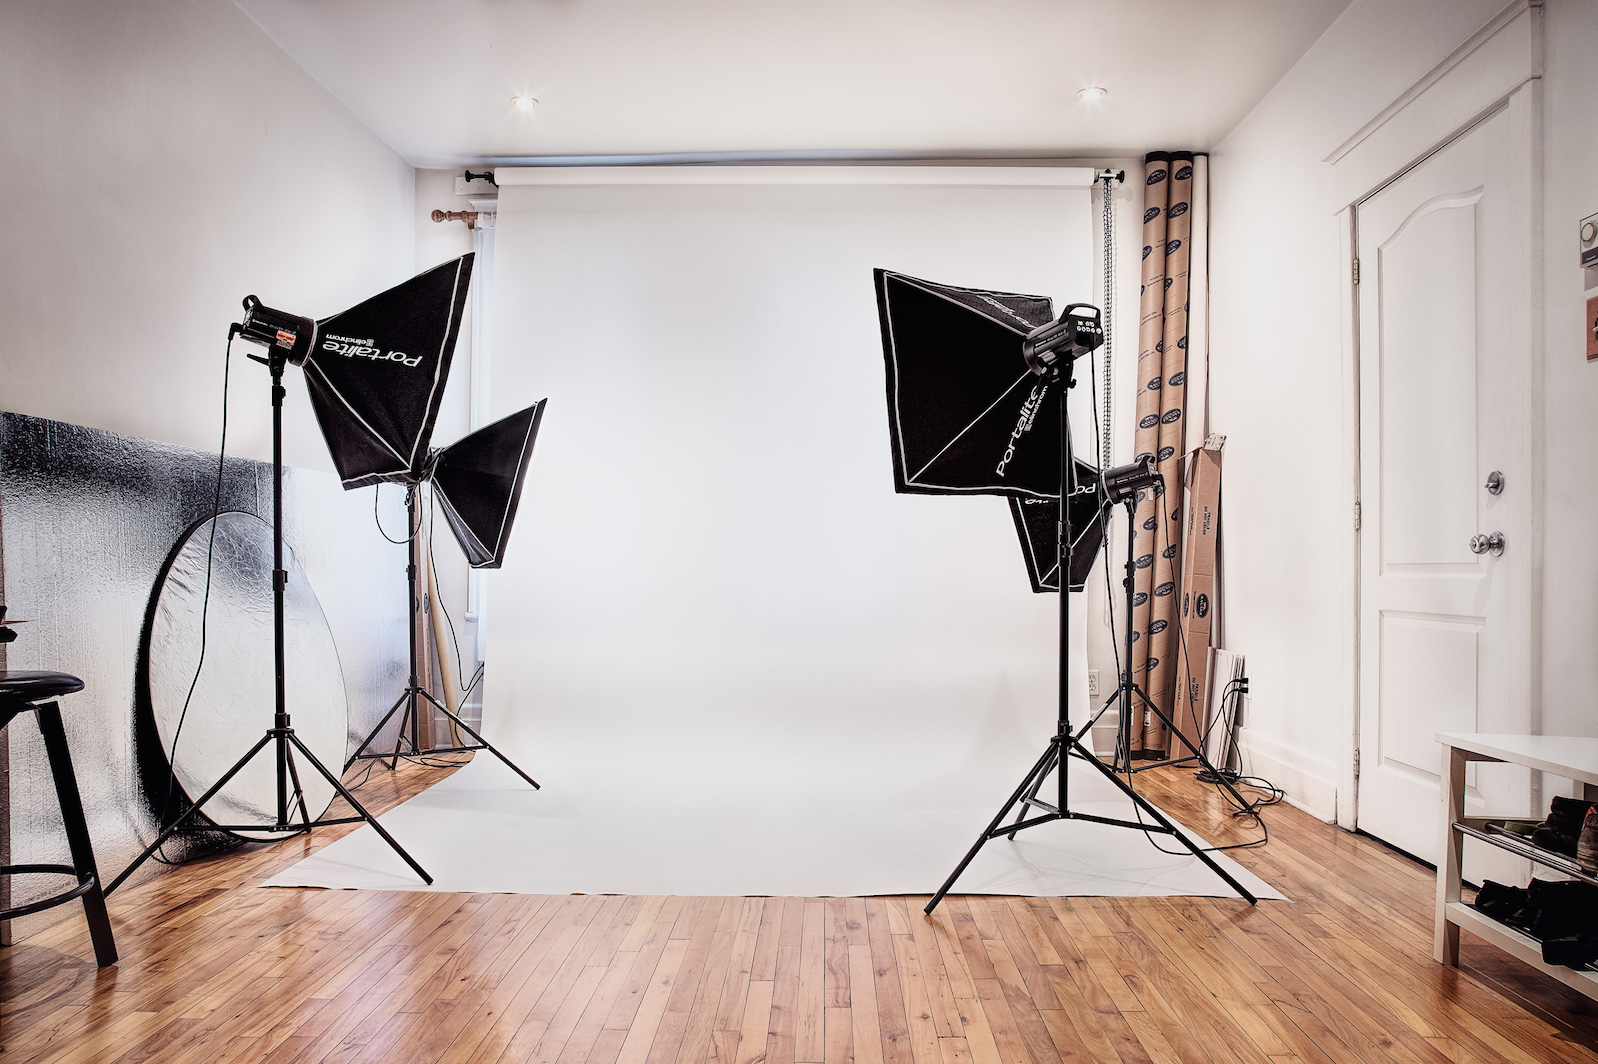 Tora Photography - Montreal Photography Studio